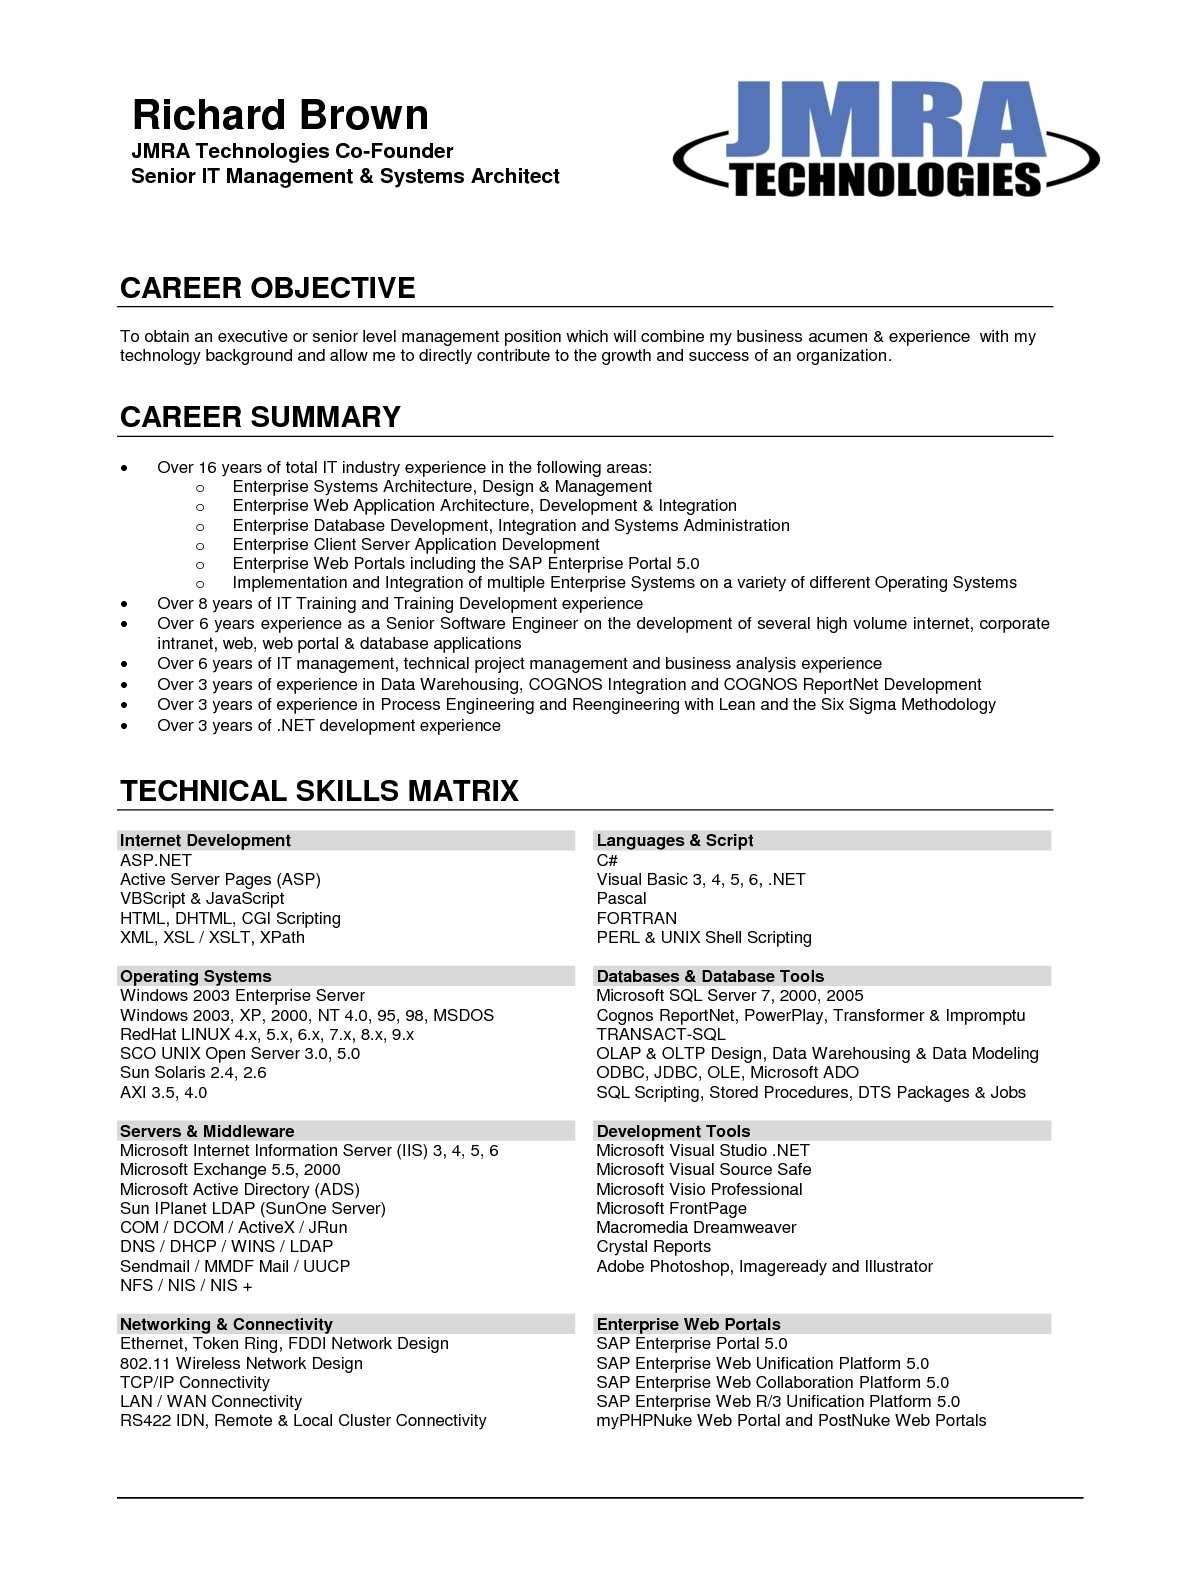 Good Objective For Resume Career Objective Resume Template Good Resume Objective Good Resume Objective good objective for resume|wikiresume.com